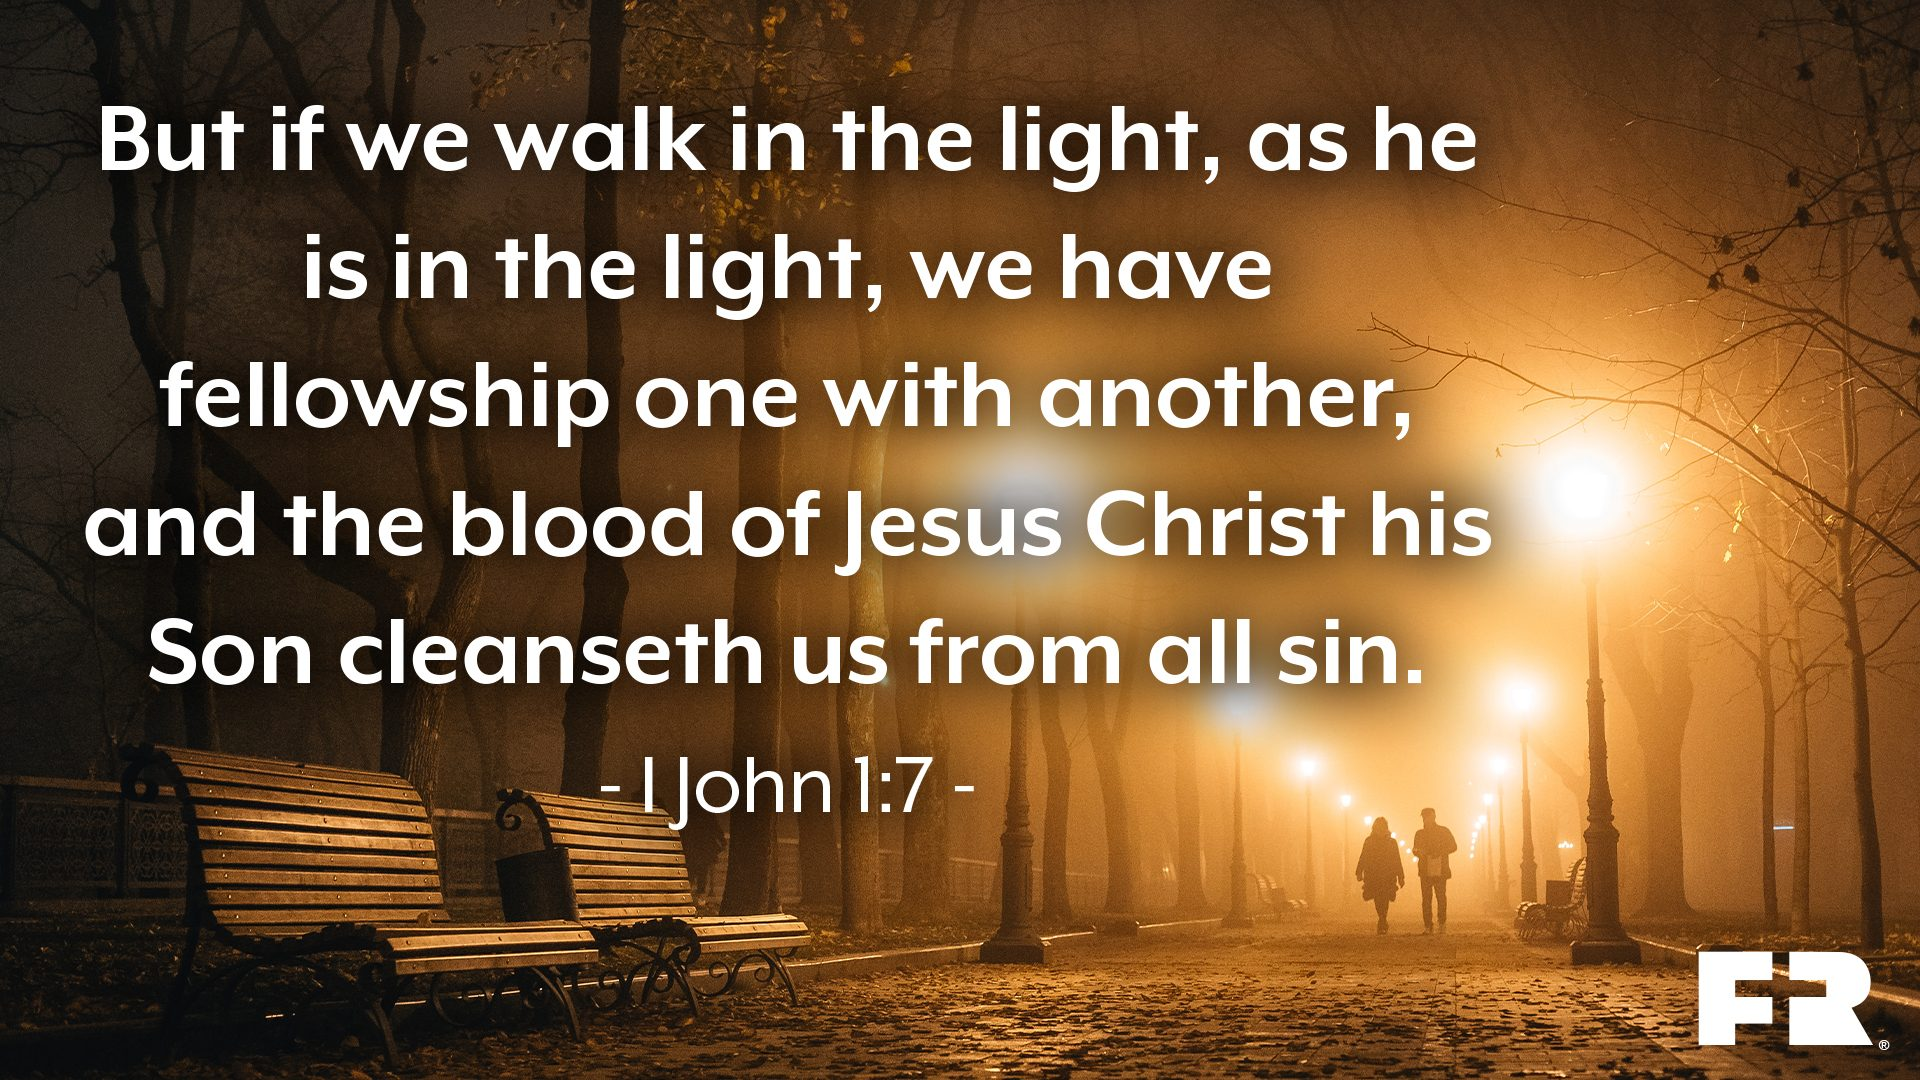 """But if we walk in the light, as he is in the light, we have fellowship one with another, and the blood of Jesus Christ his Son cleanseth us from all sin."""